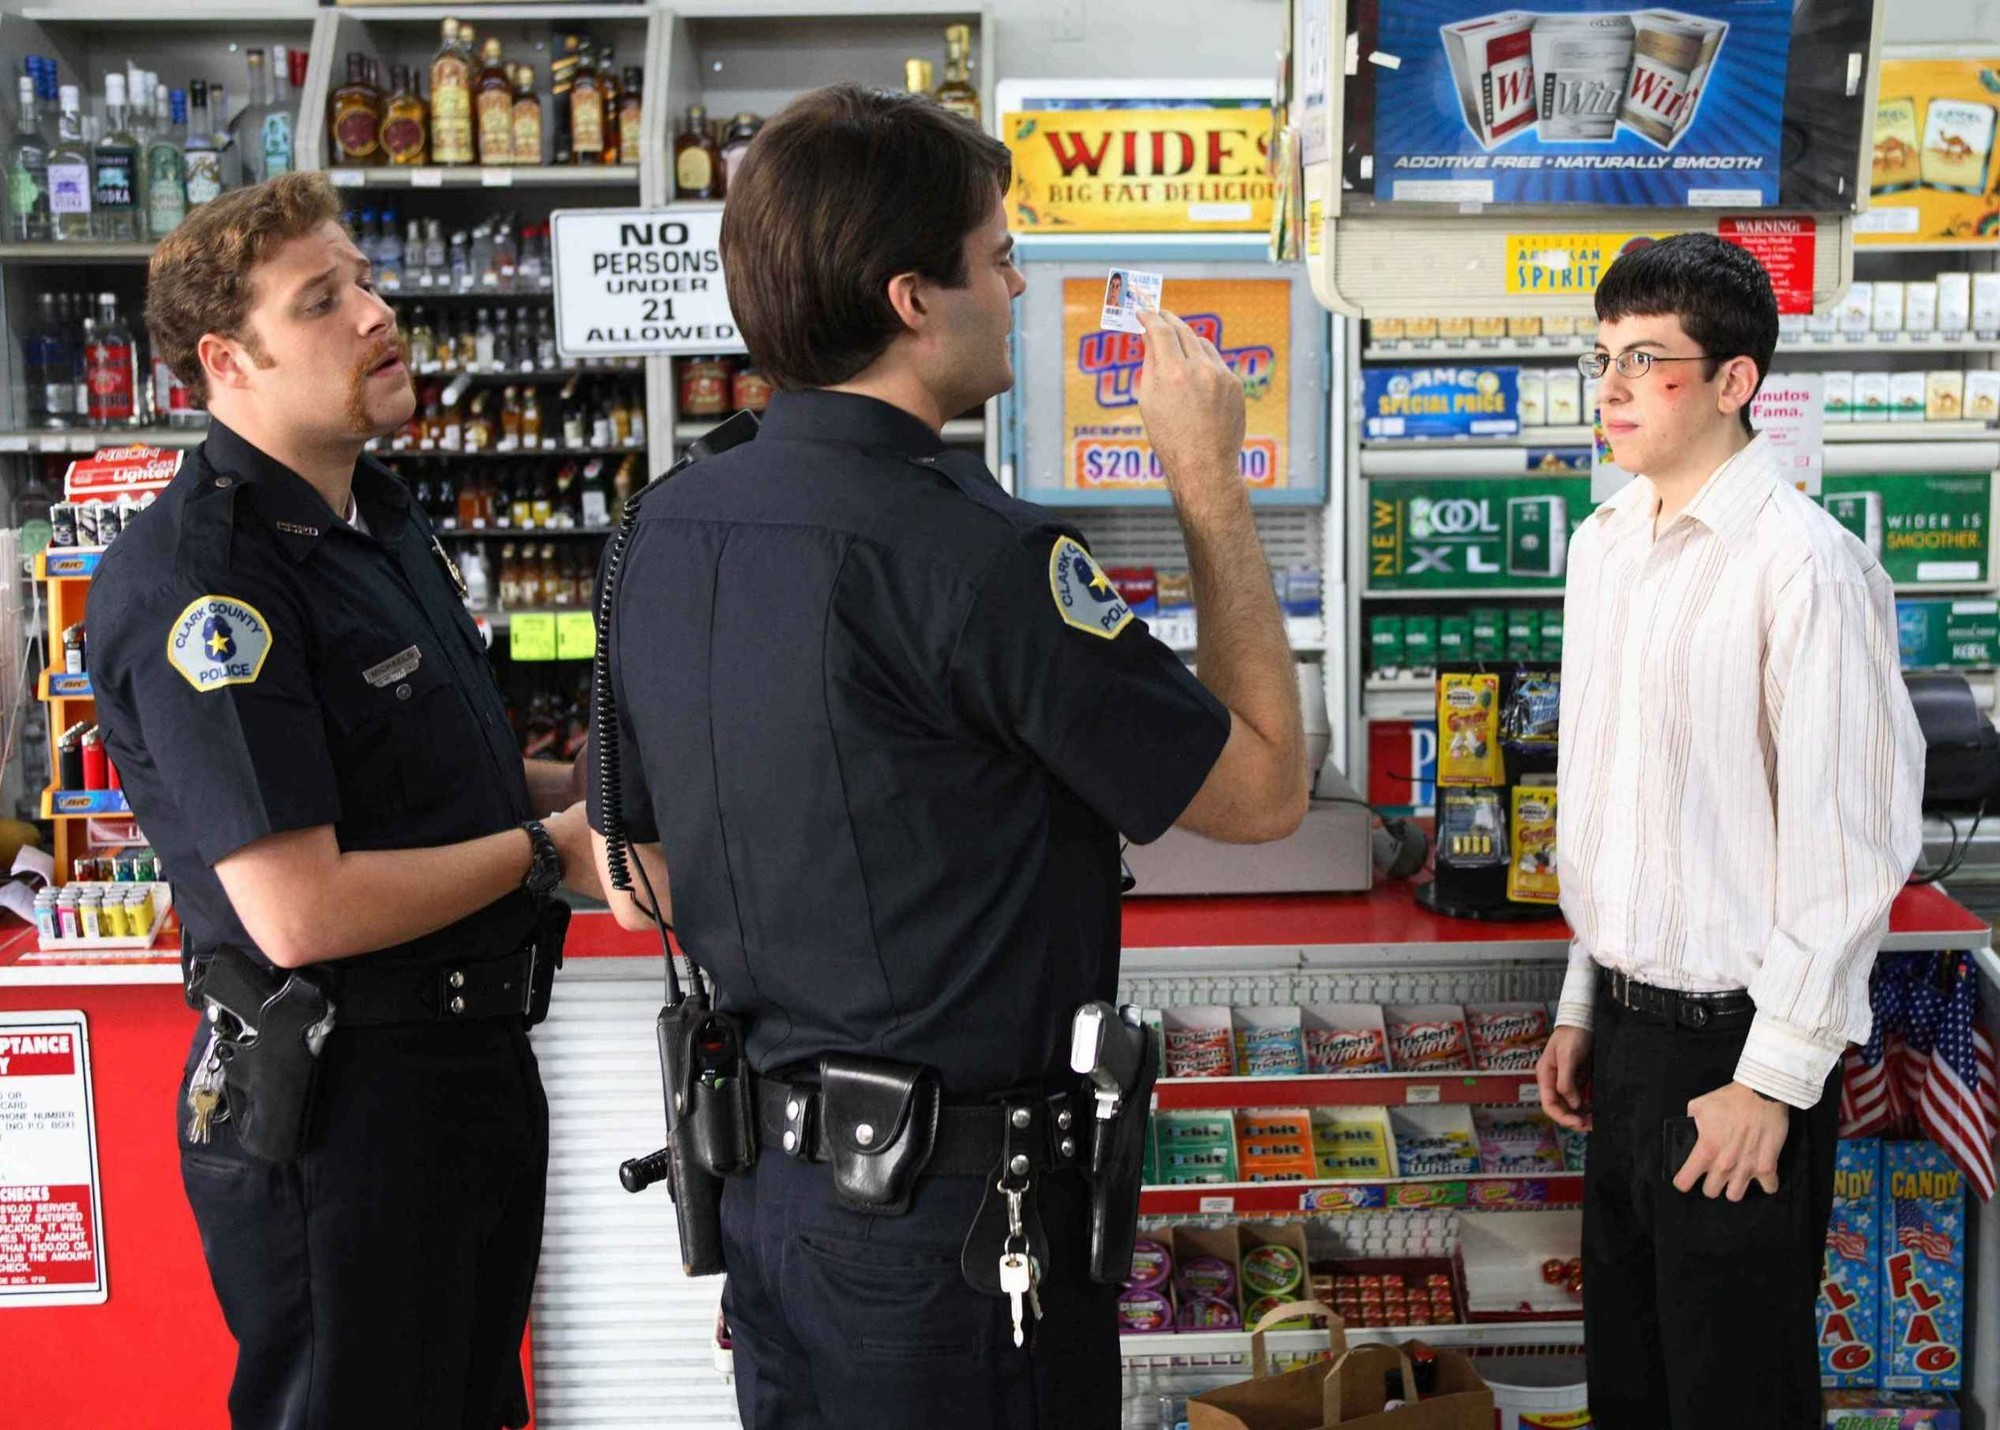 5 Ways To Avoid Getting Busted For Weed